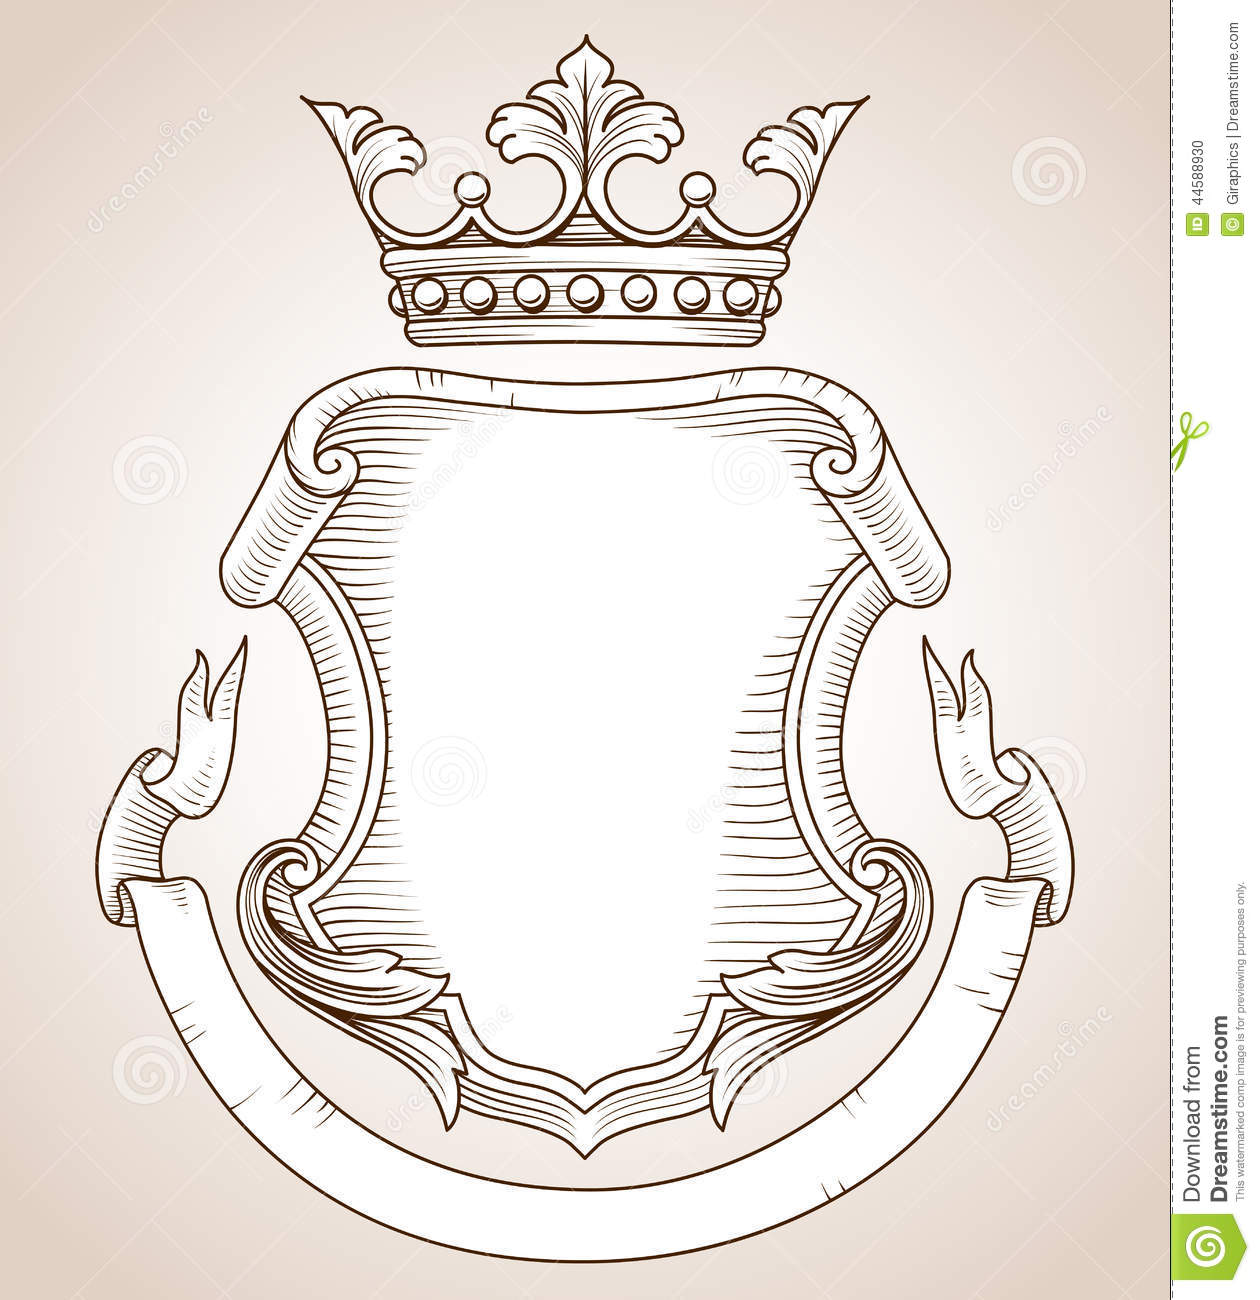 Coat Of Arms Stock Vector